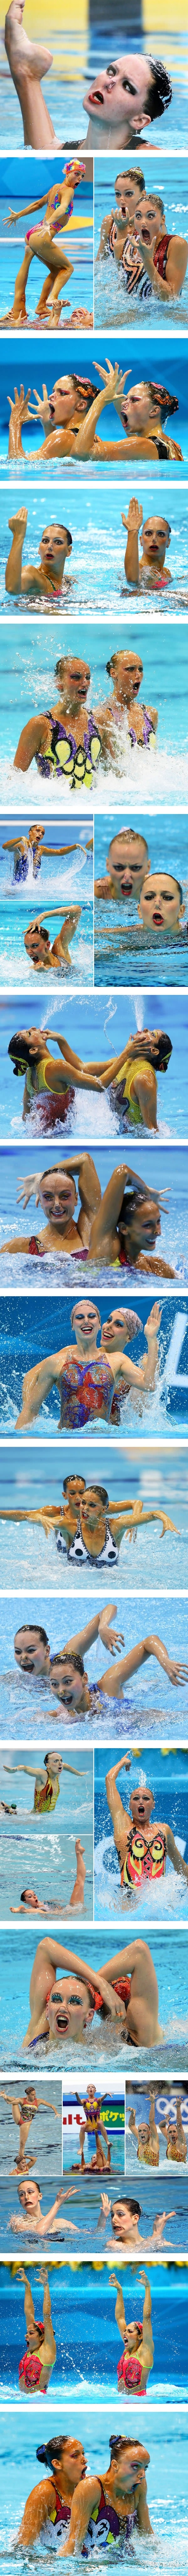 Synchronised swimming is so majestic